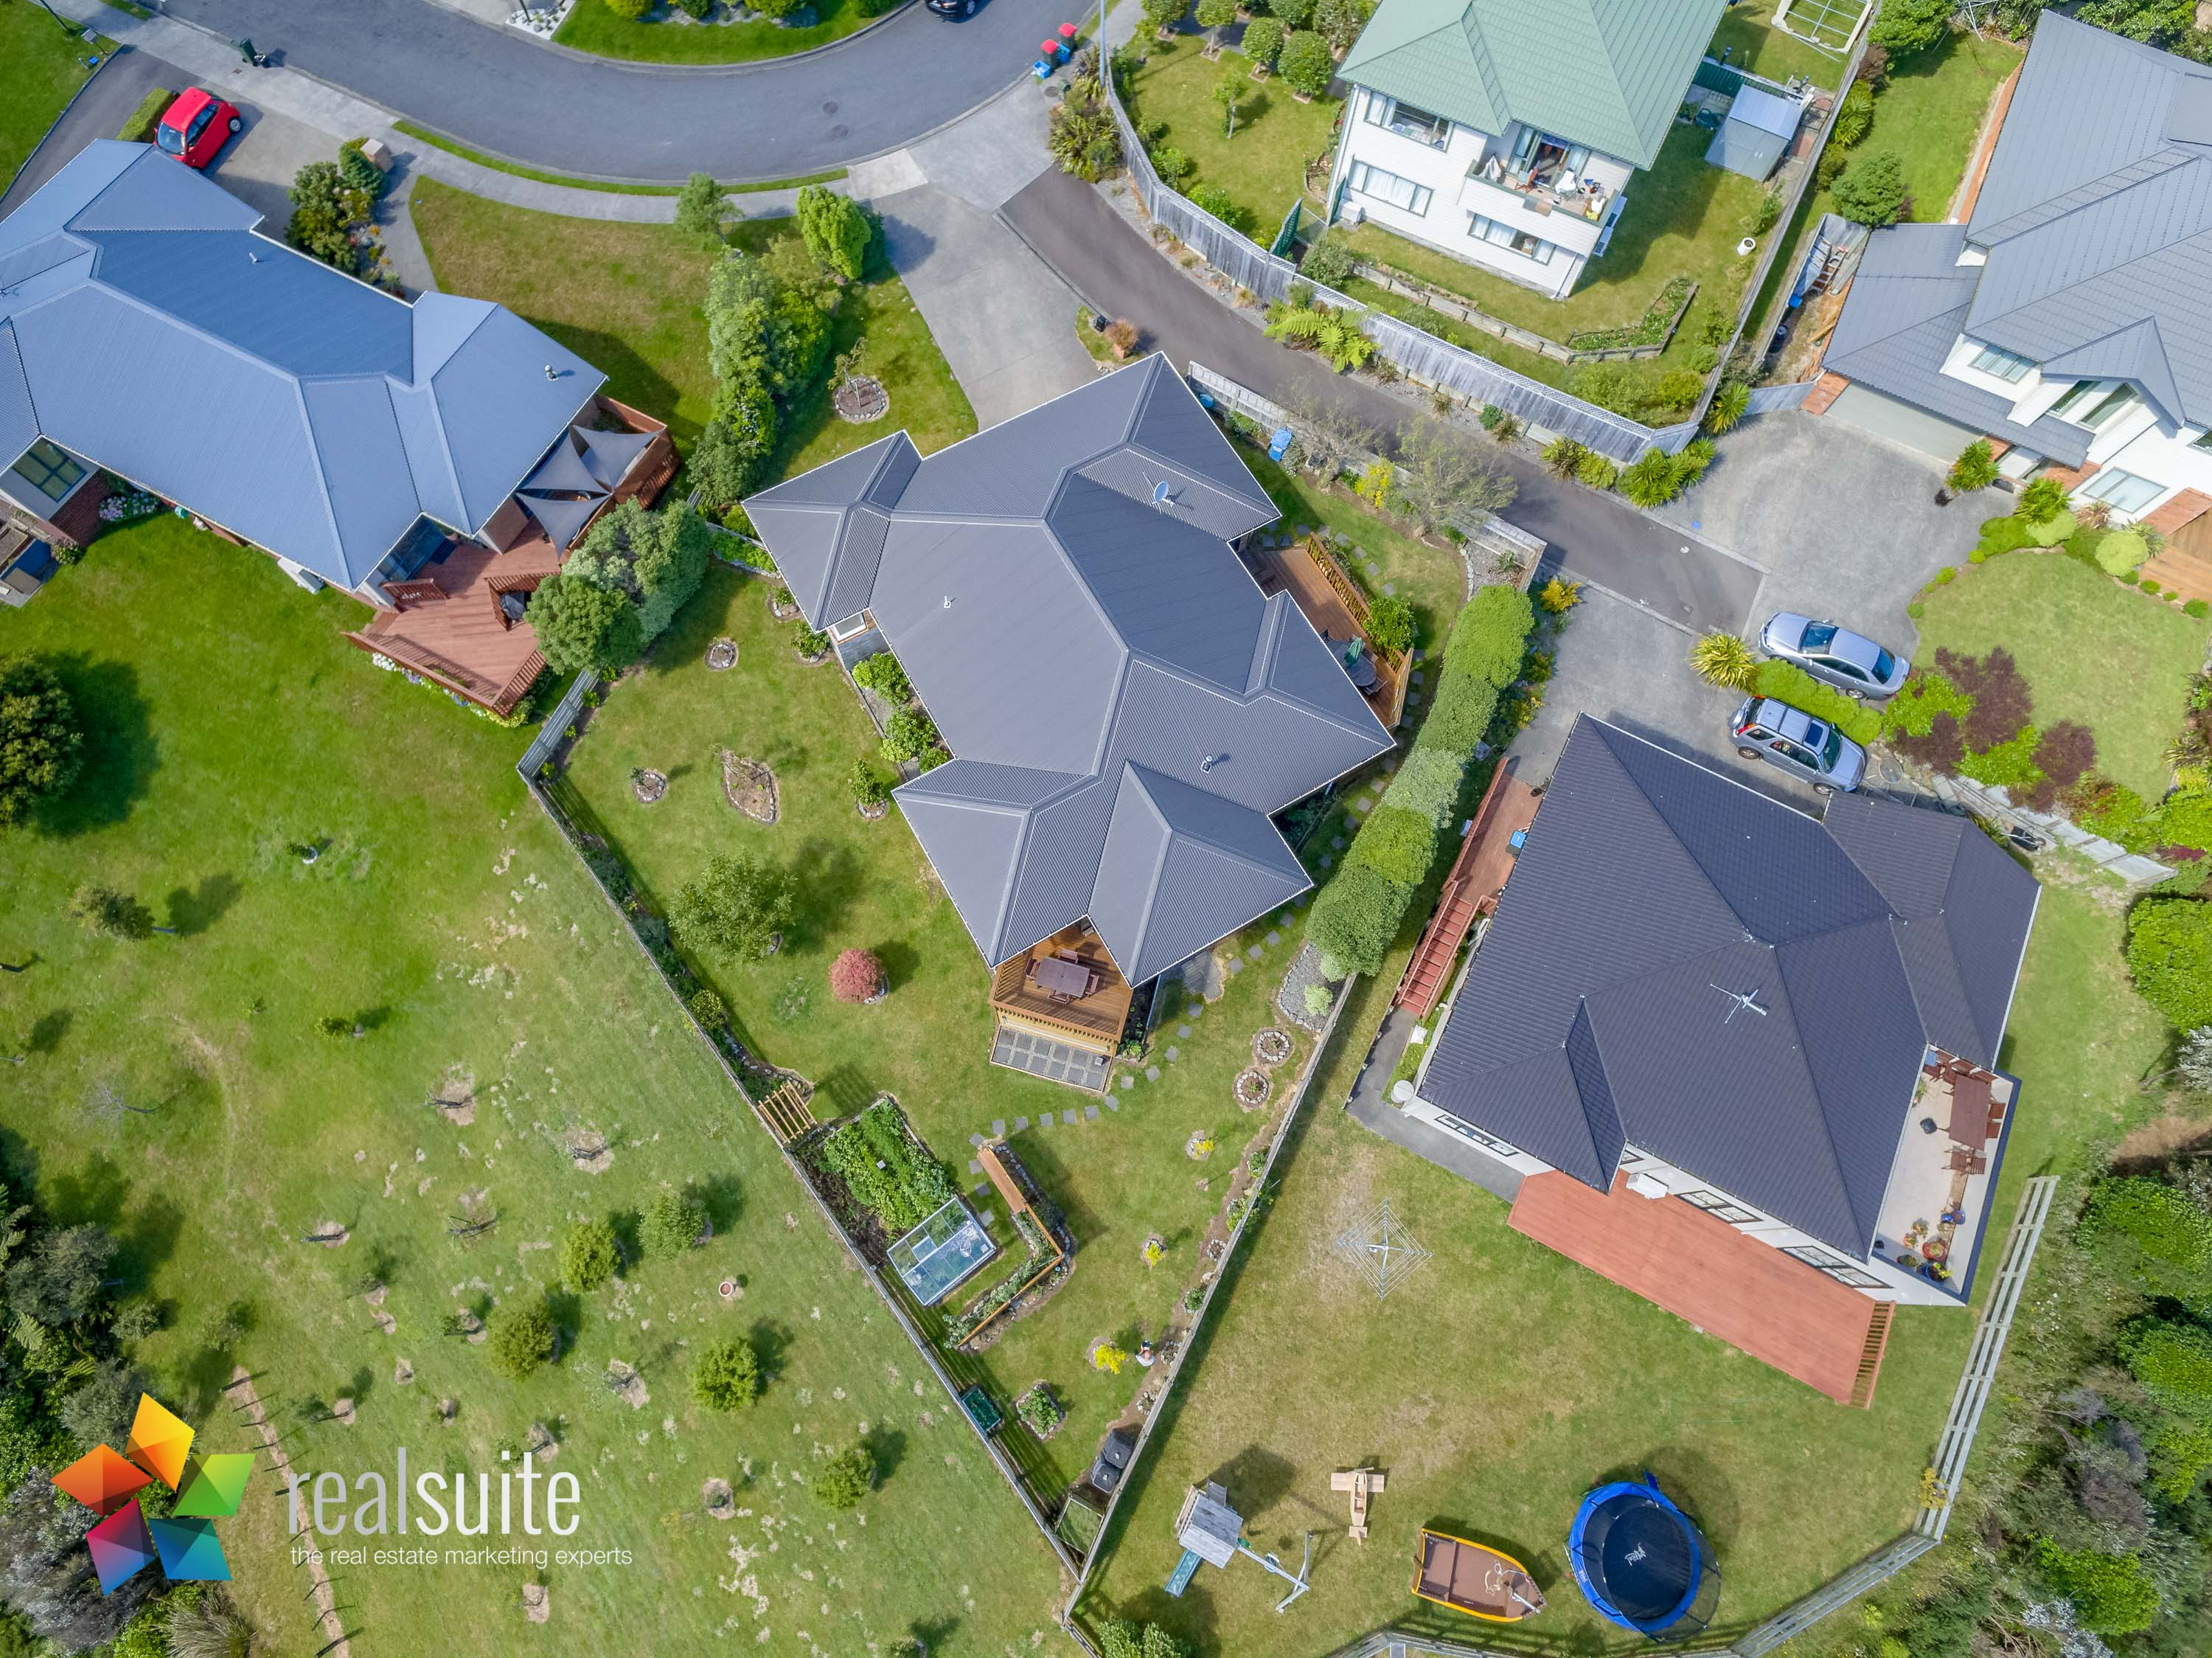 9 McEwen Crescent, Riverstone Terraces Aerial 0393